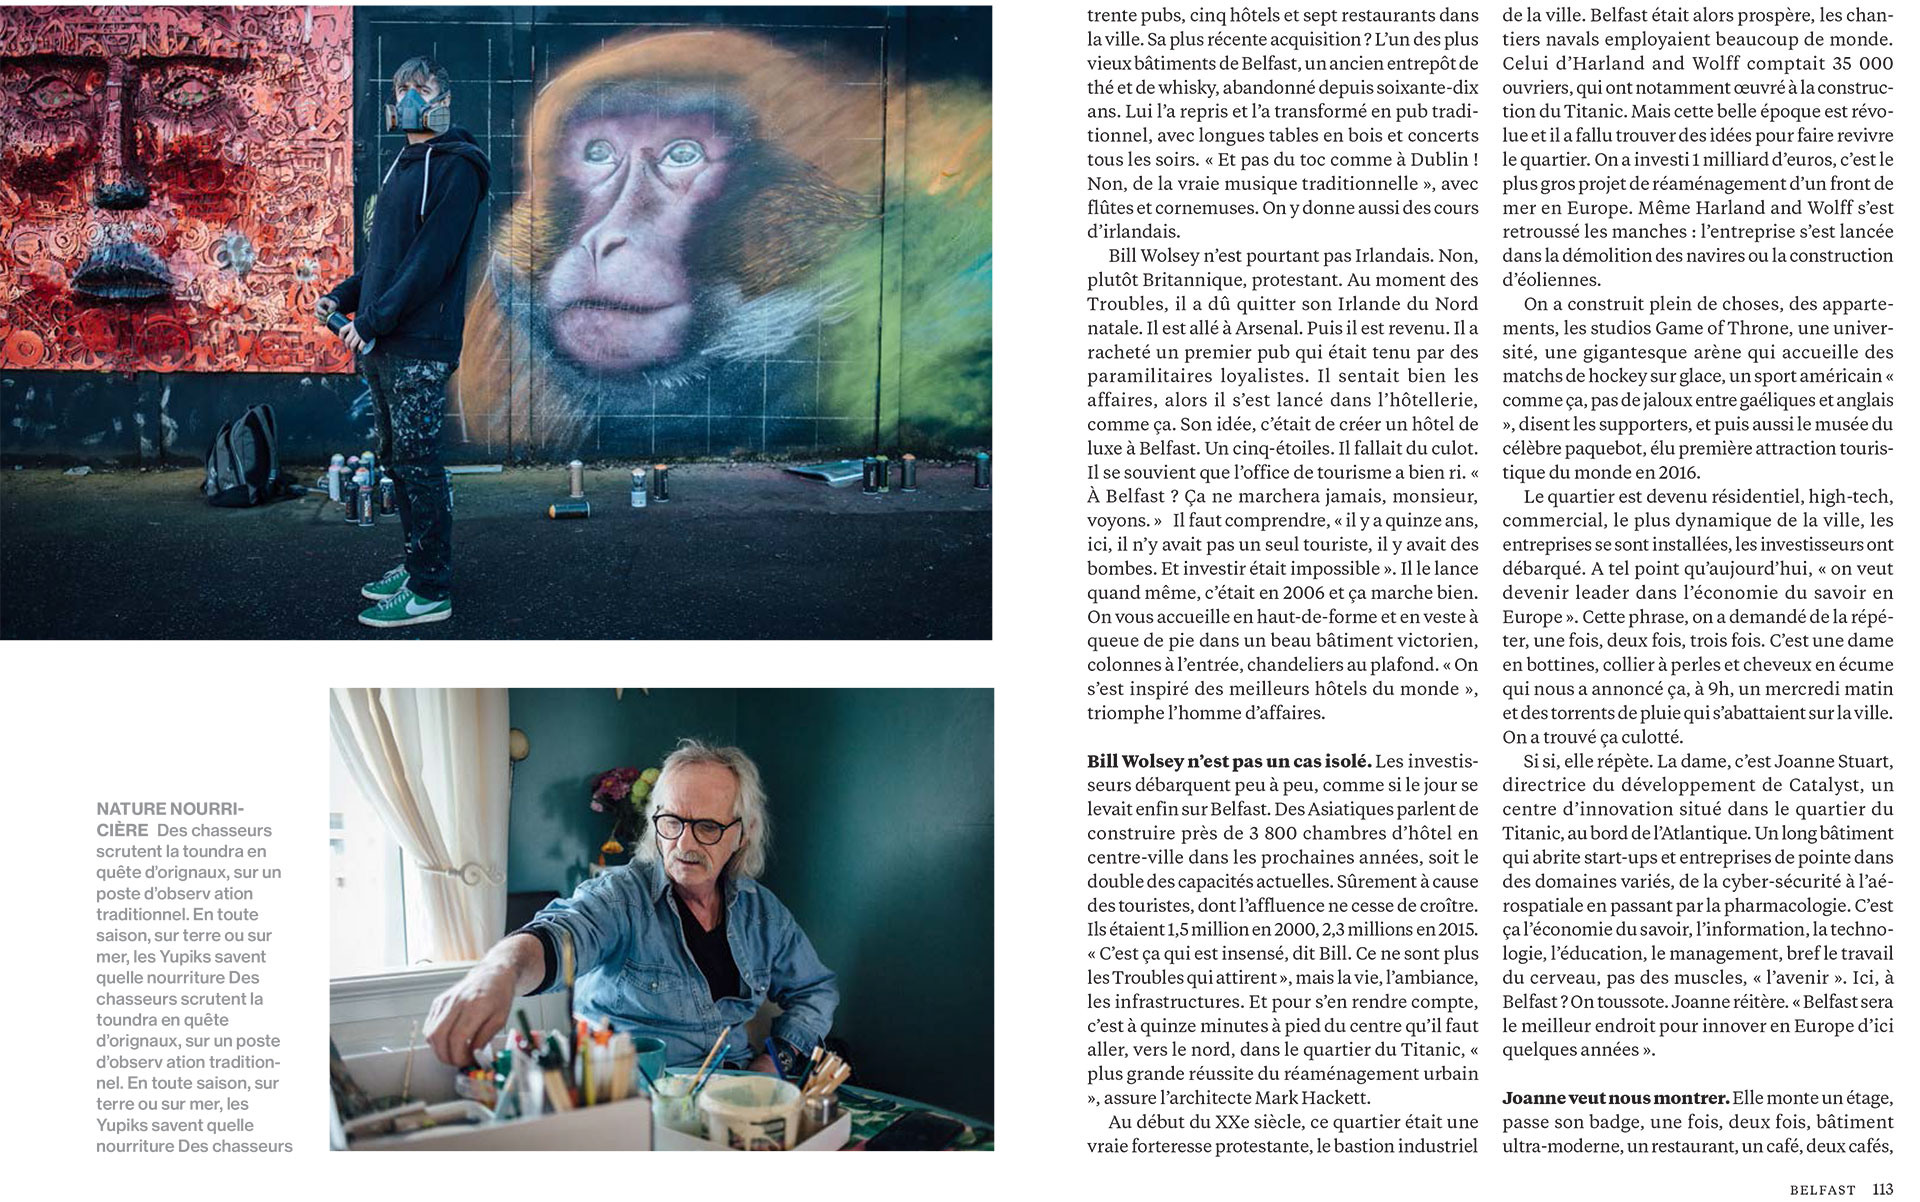 National Geographic / Cyril Marcilhacy / juin 2017